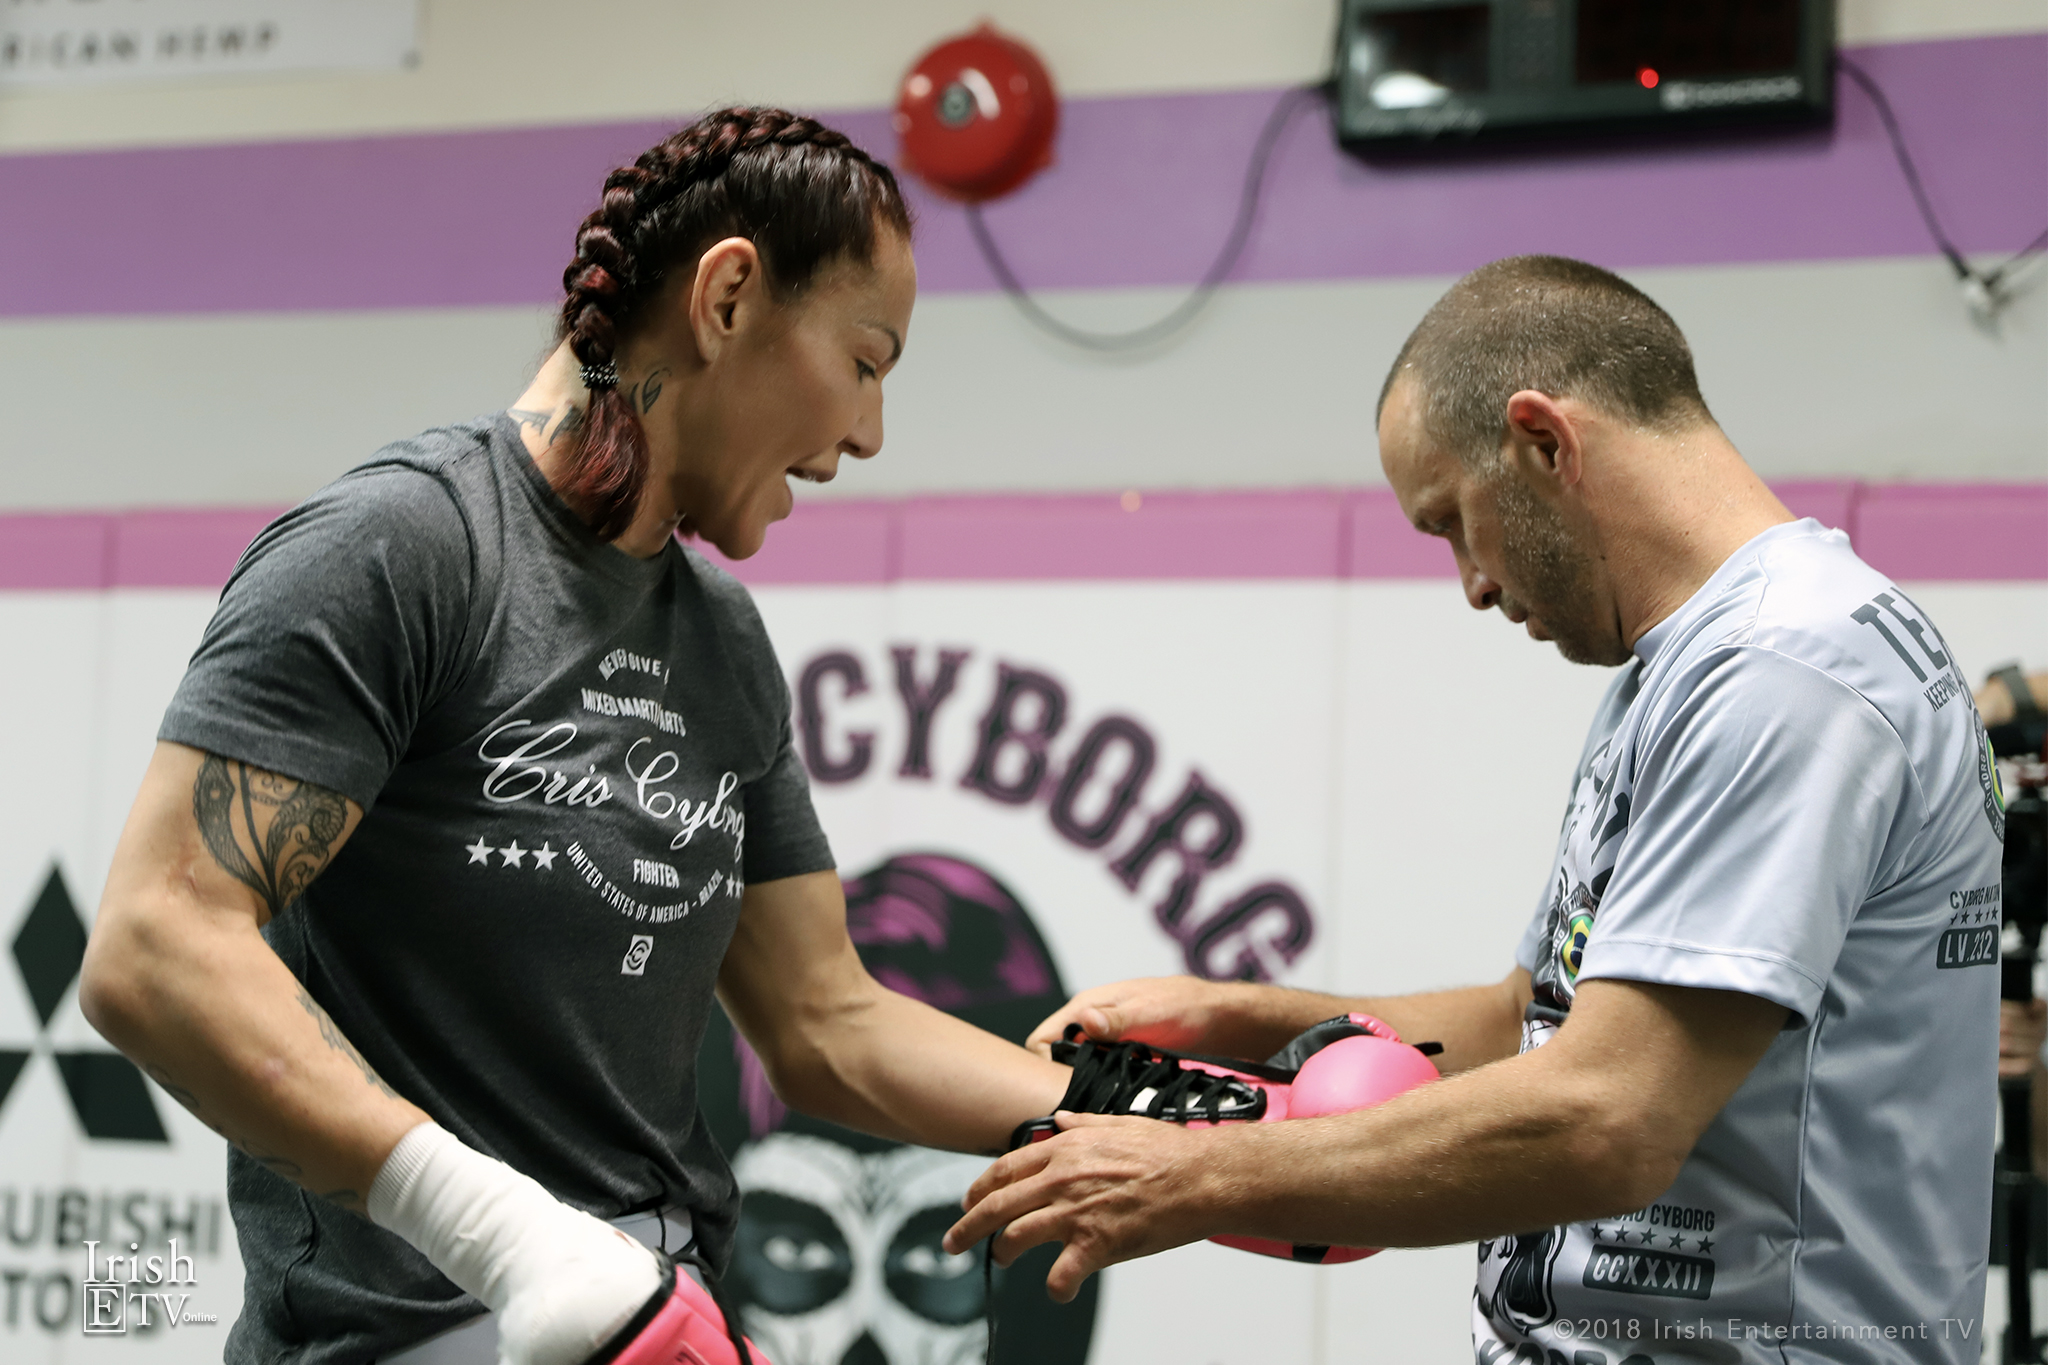 Cris Cyborg, Jason Parillo